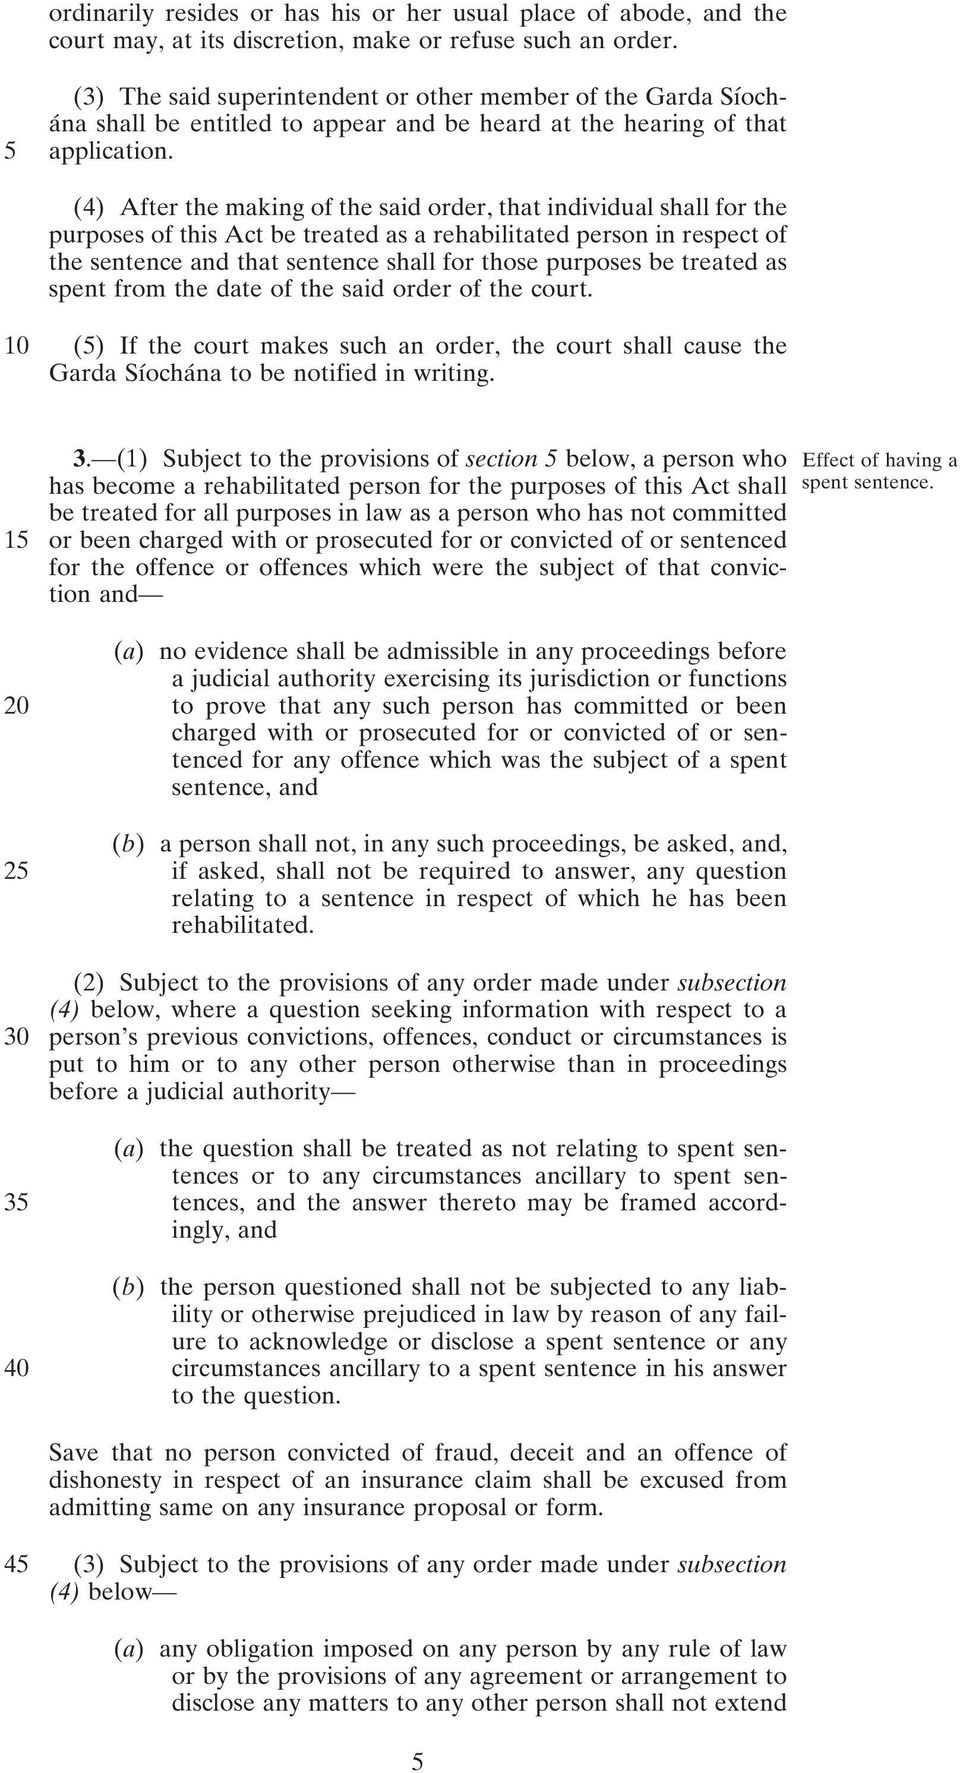 (4) After the making of the said order, that individual shall for the purposes of this Act be treated as a rehabilitated person in respect of the sentence and that sentence shall for those purposes